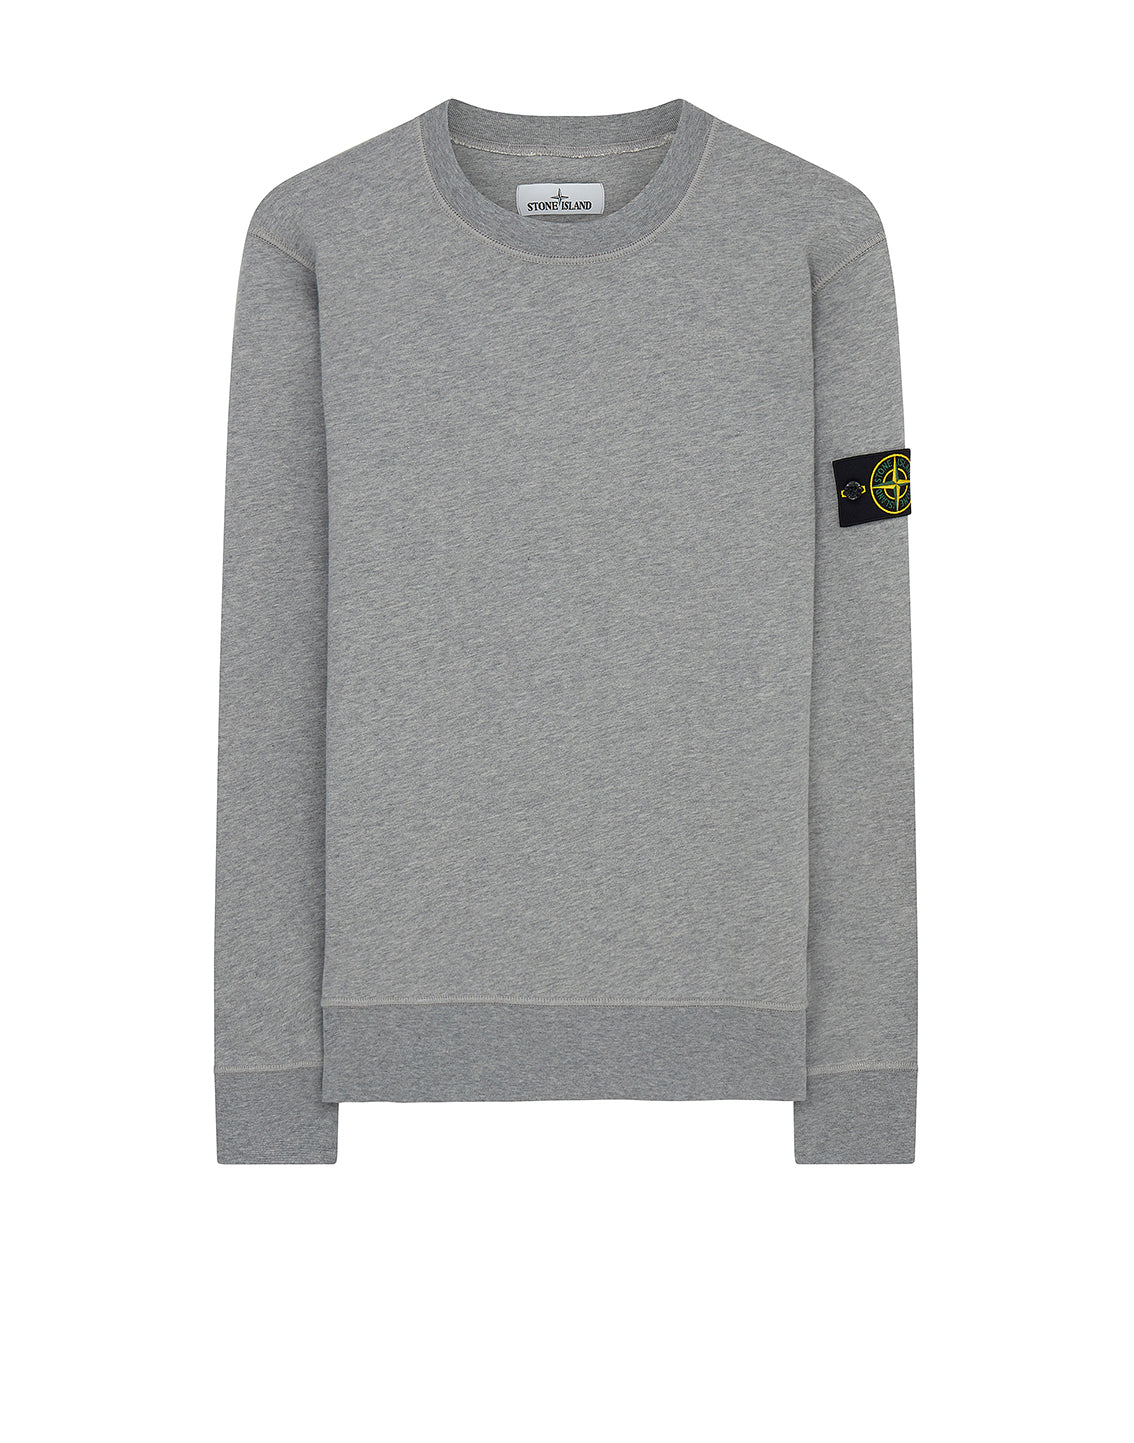 63051 Sweatshirt in Powder